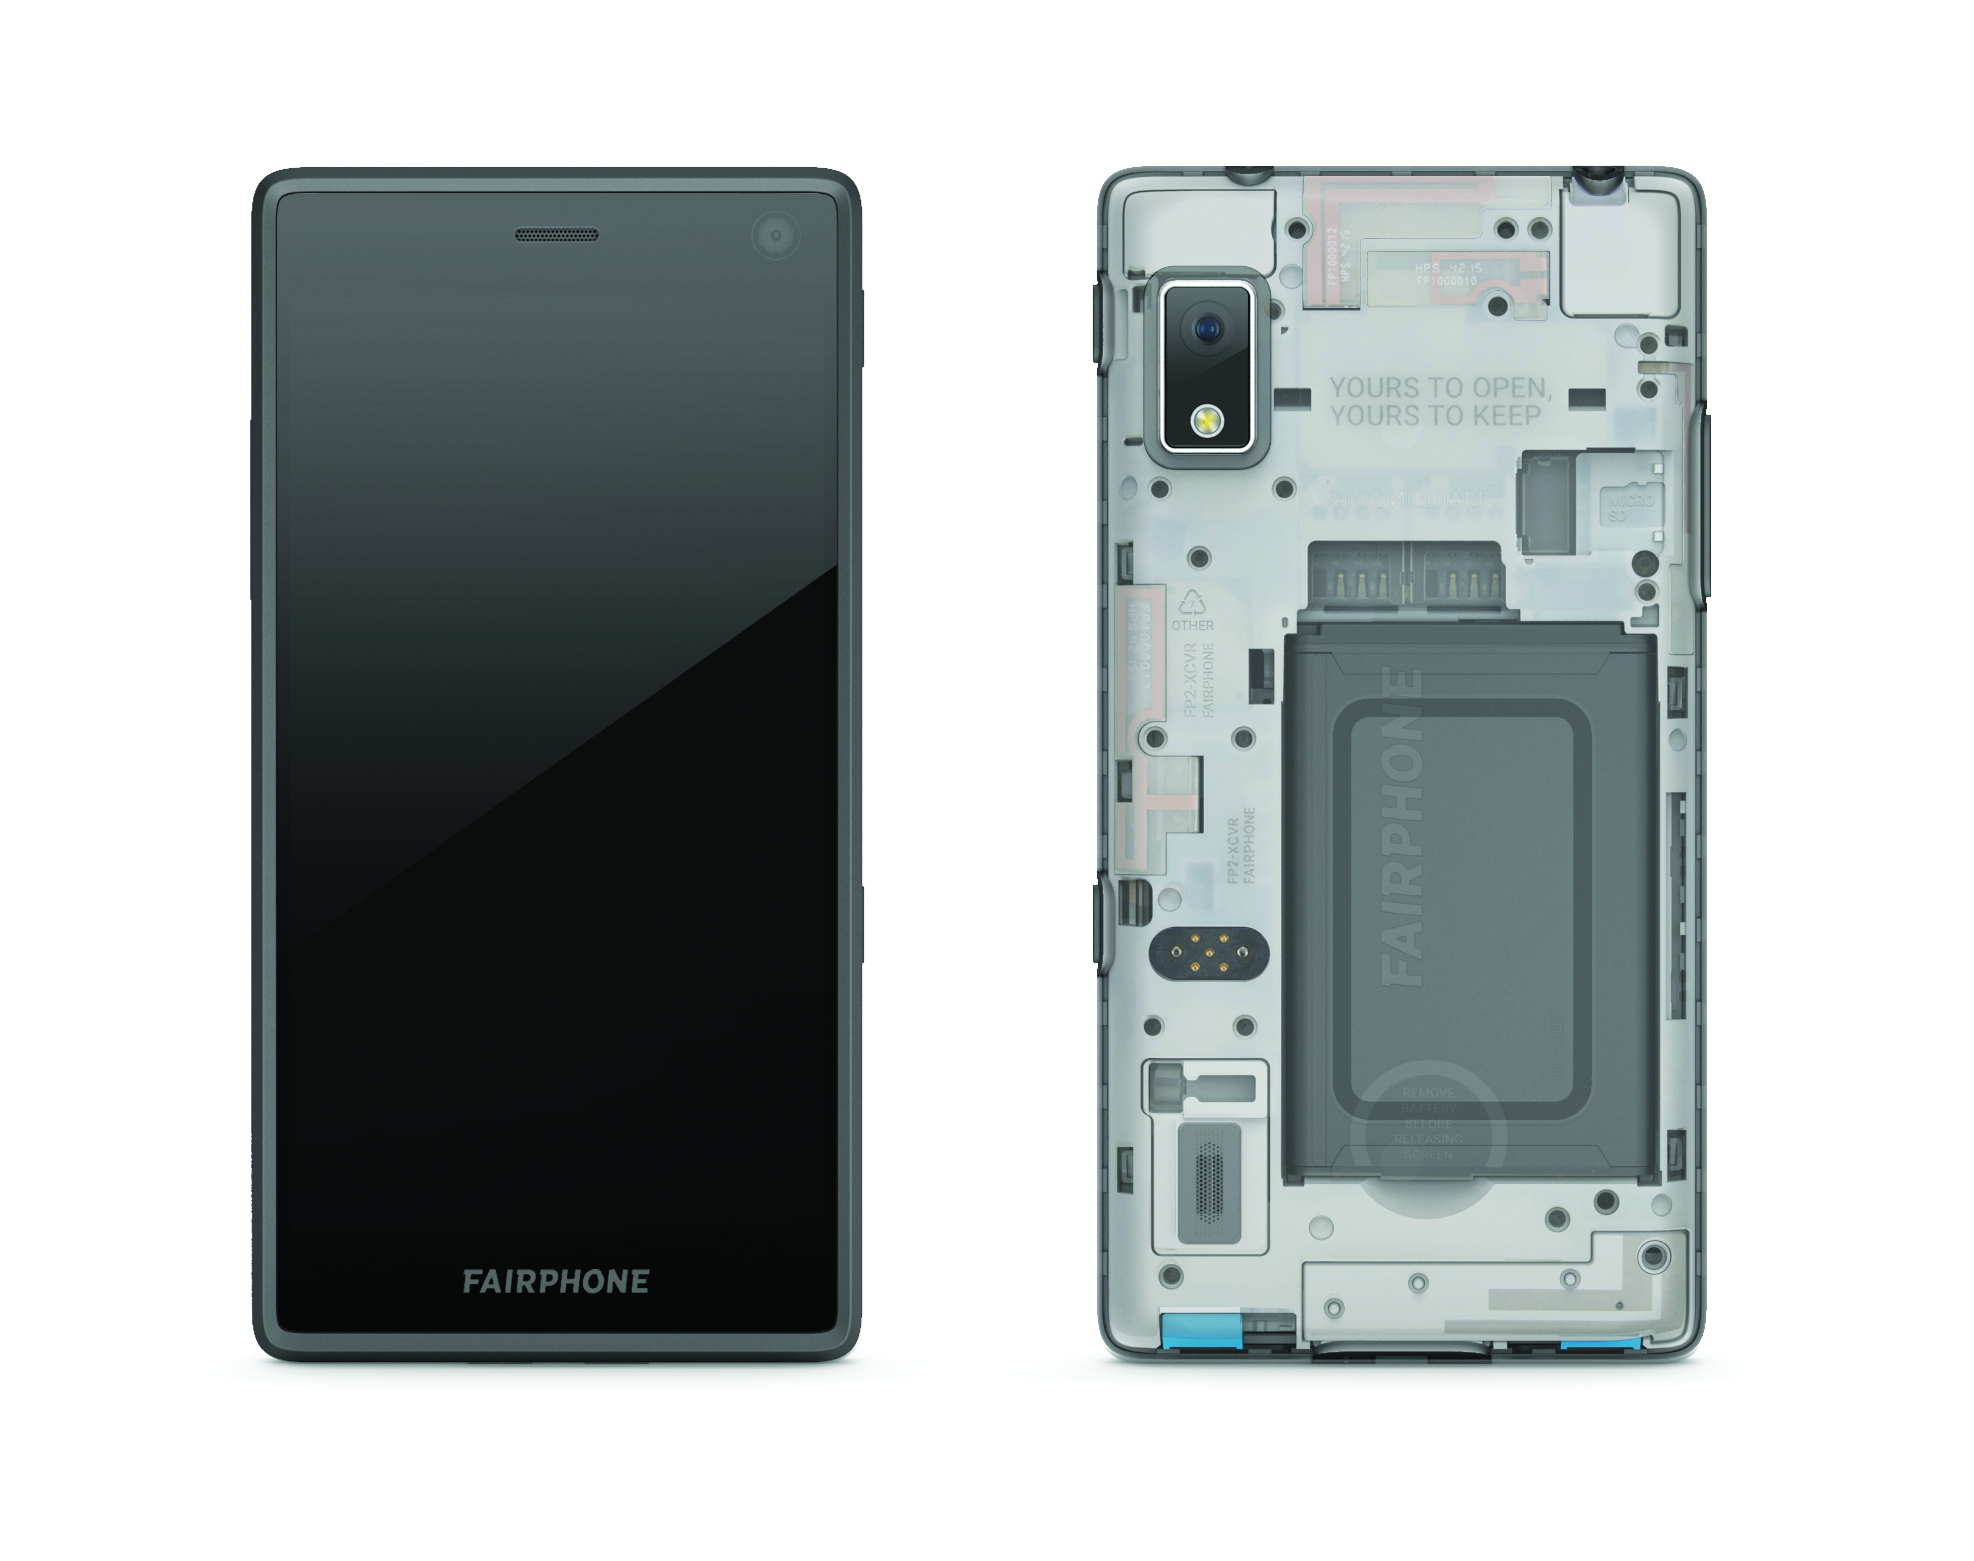 Image Result For Fairphone